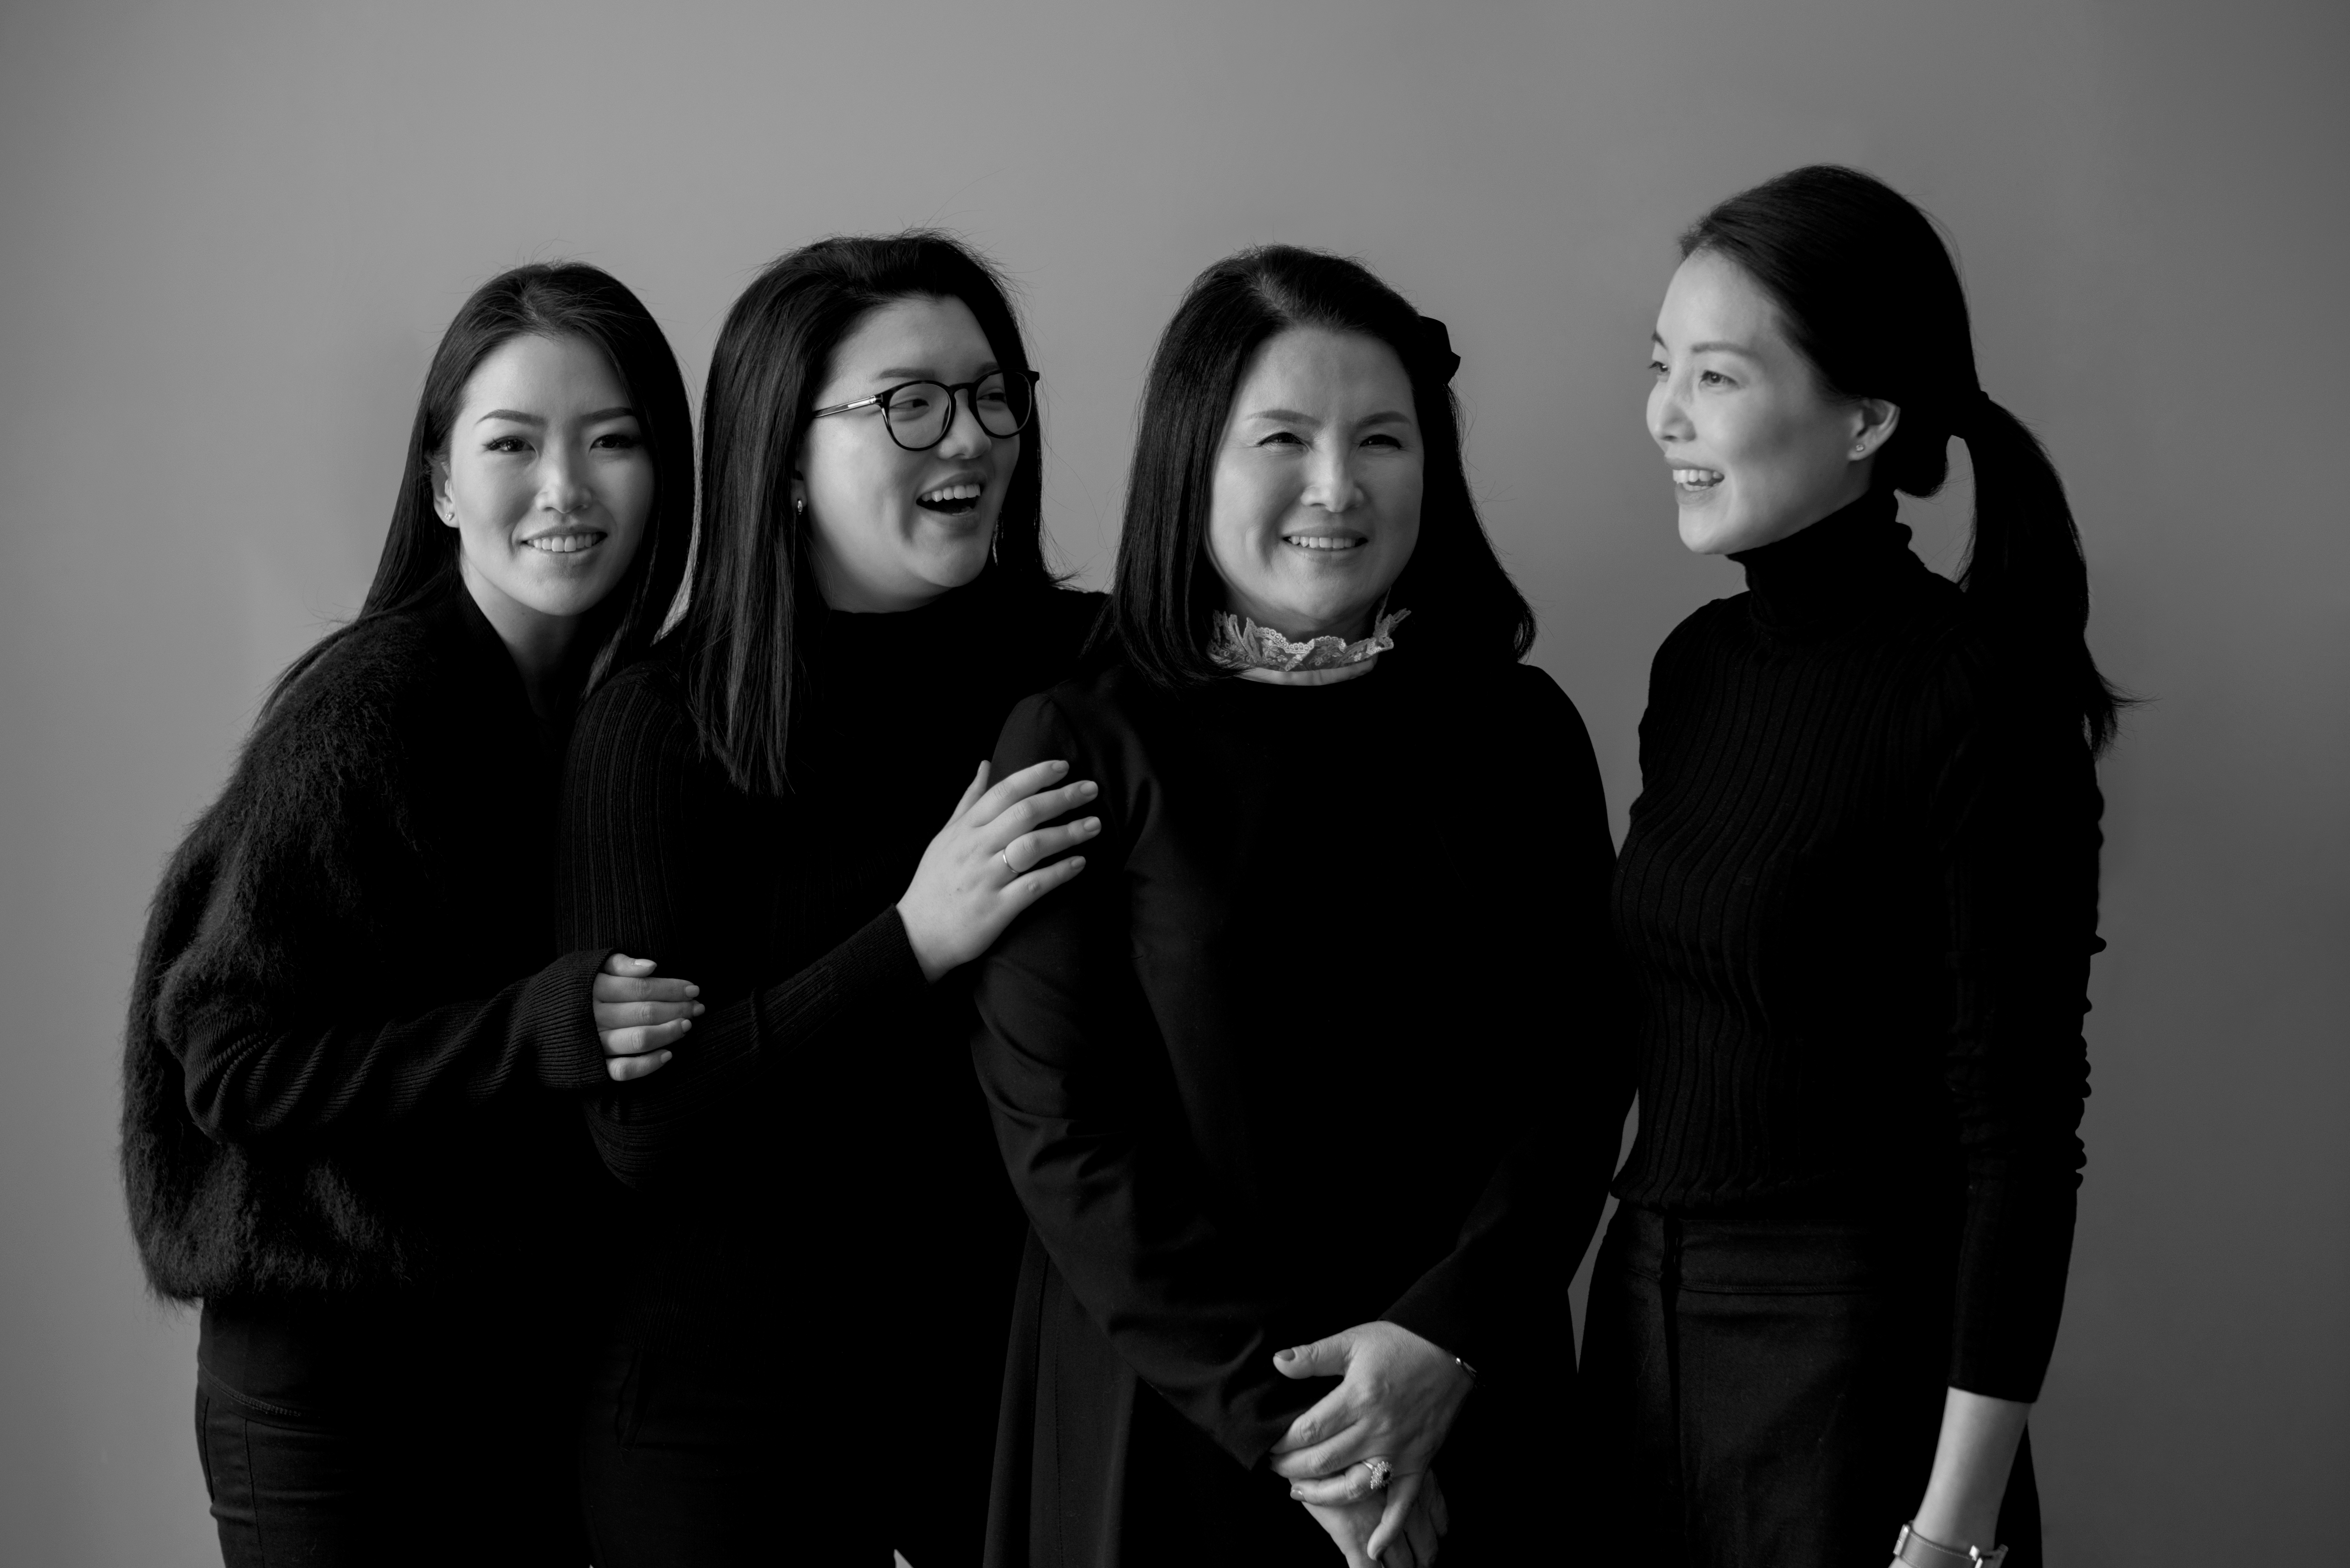 Hannah Kim, Joanna Lee, and Rebekah Ma with their mother Hun Young Lee